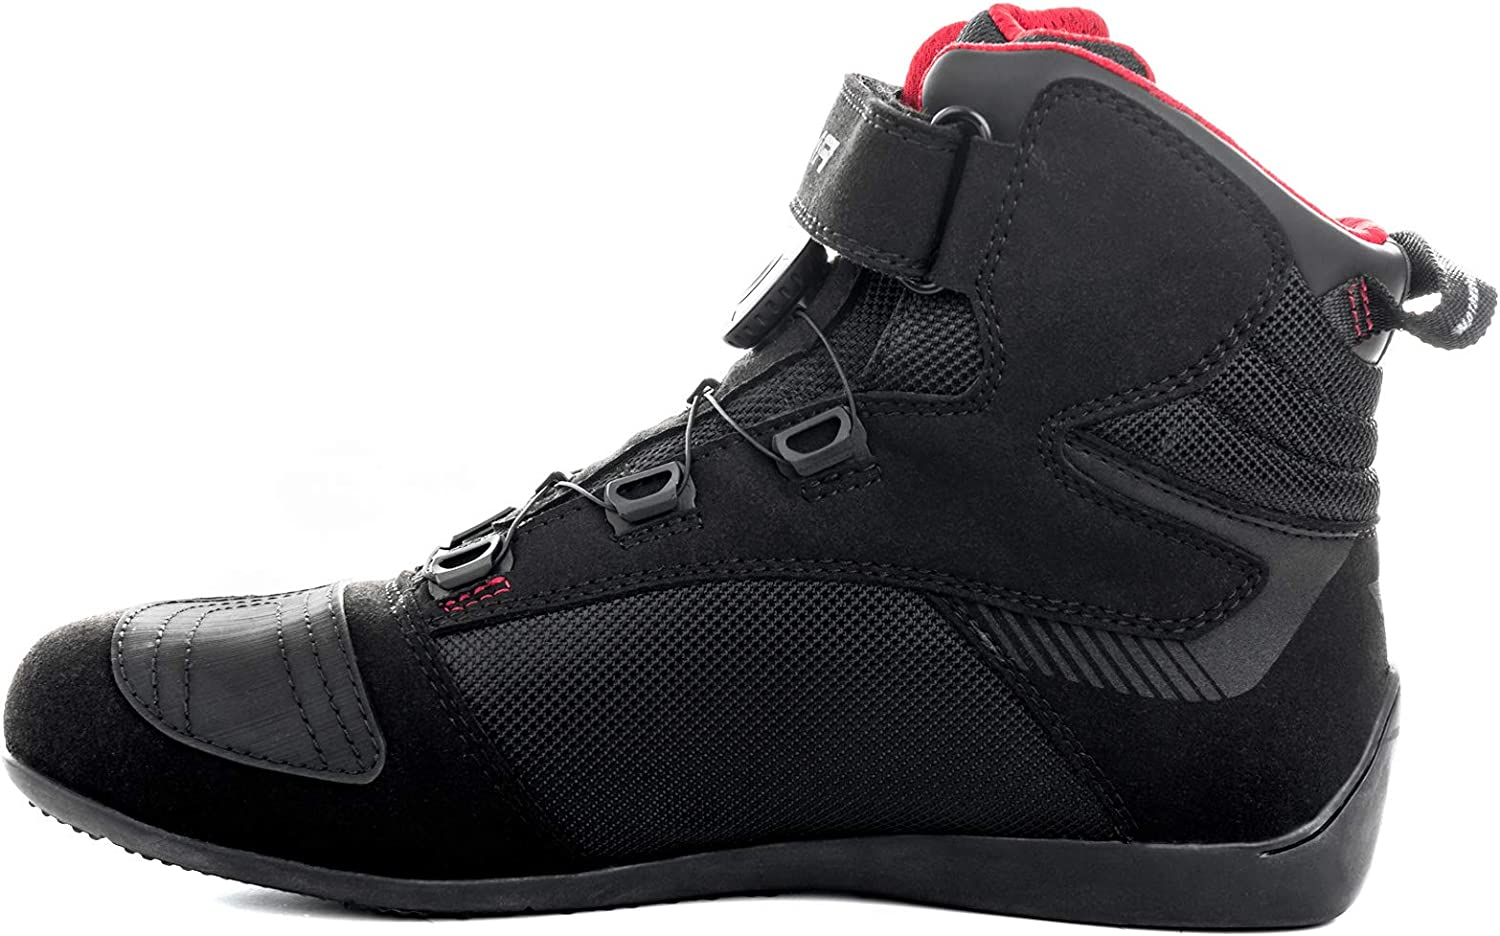 Black, 44 SHIMA EXO MEN BLACK Summer Ventilated Mesh Motorcycle Boots with ATOP Lacing System